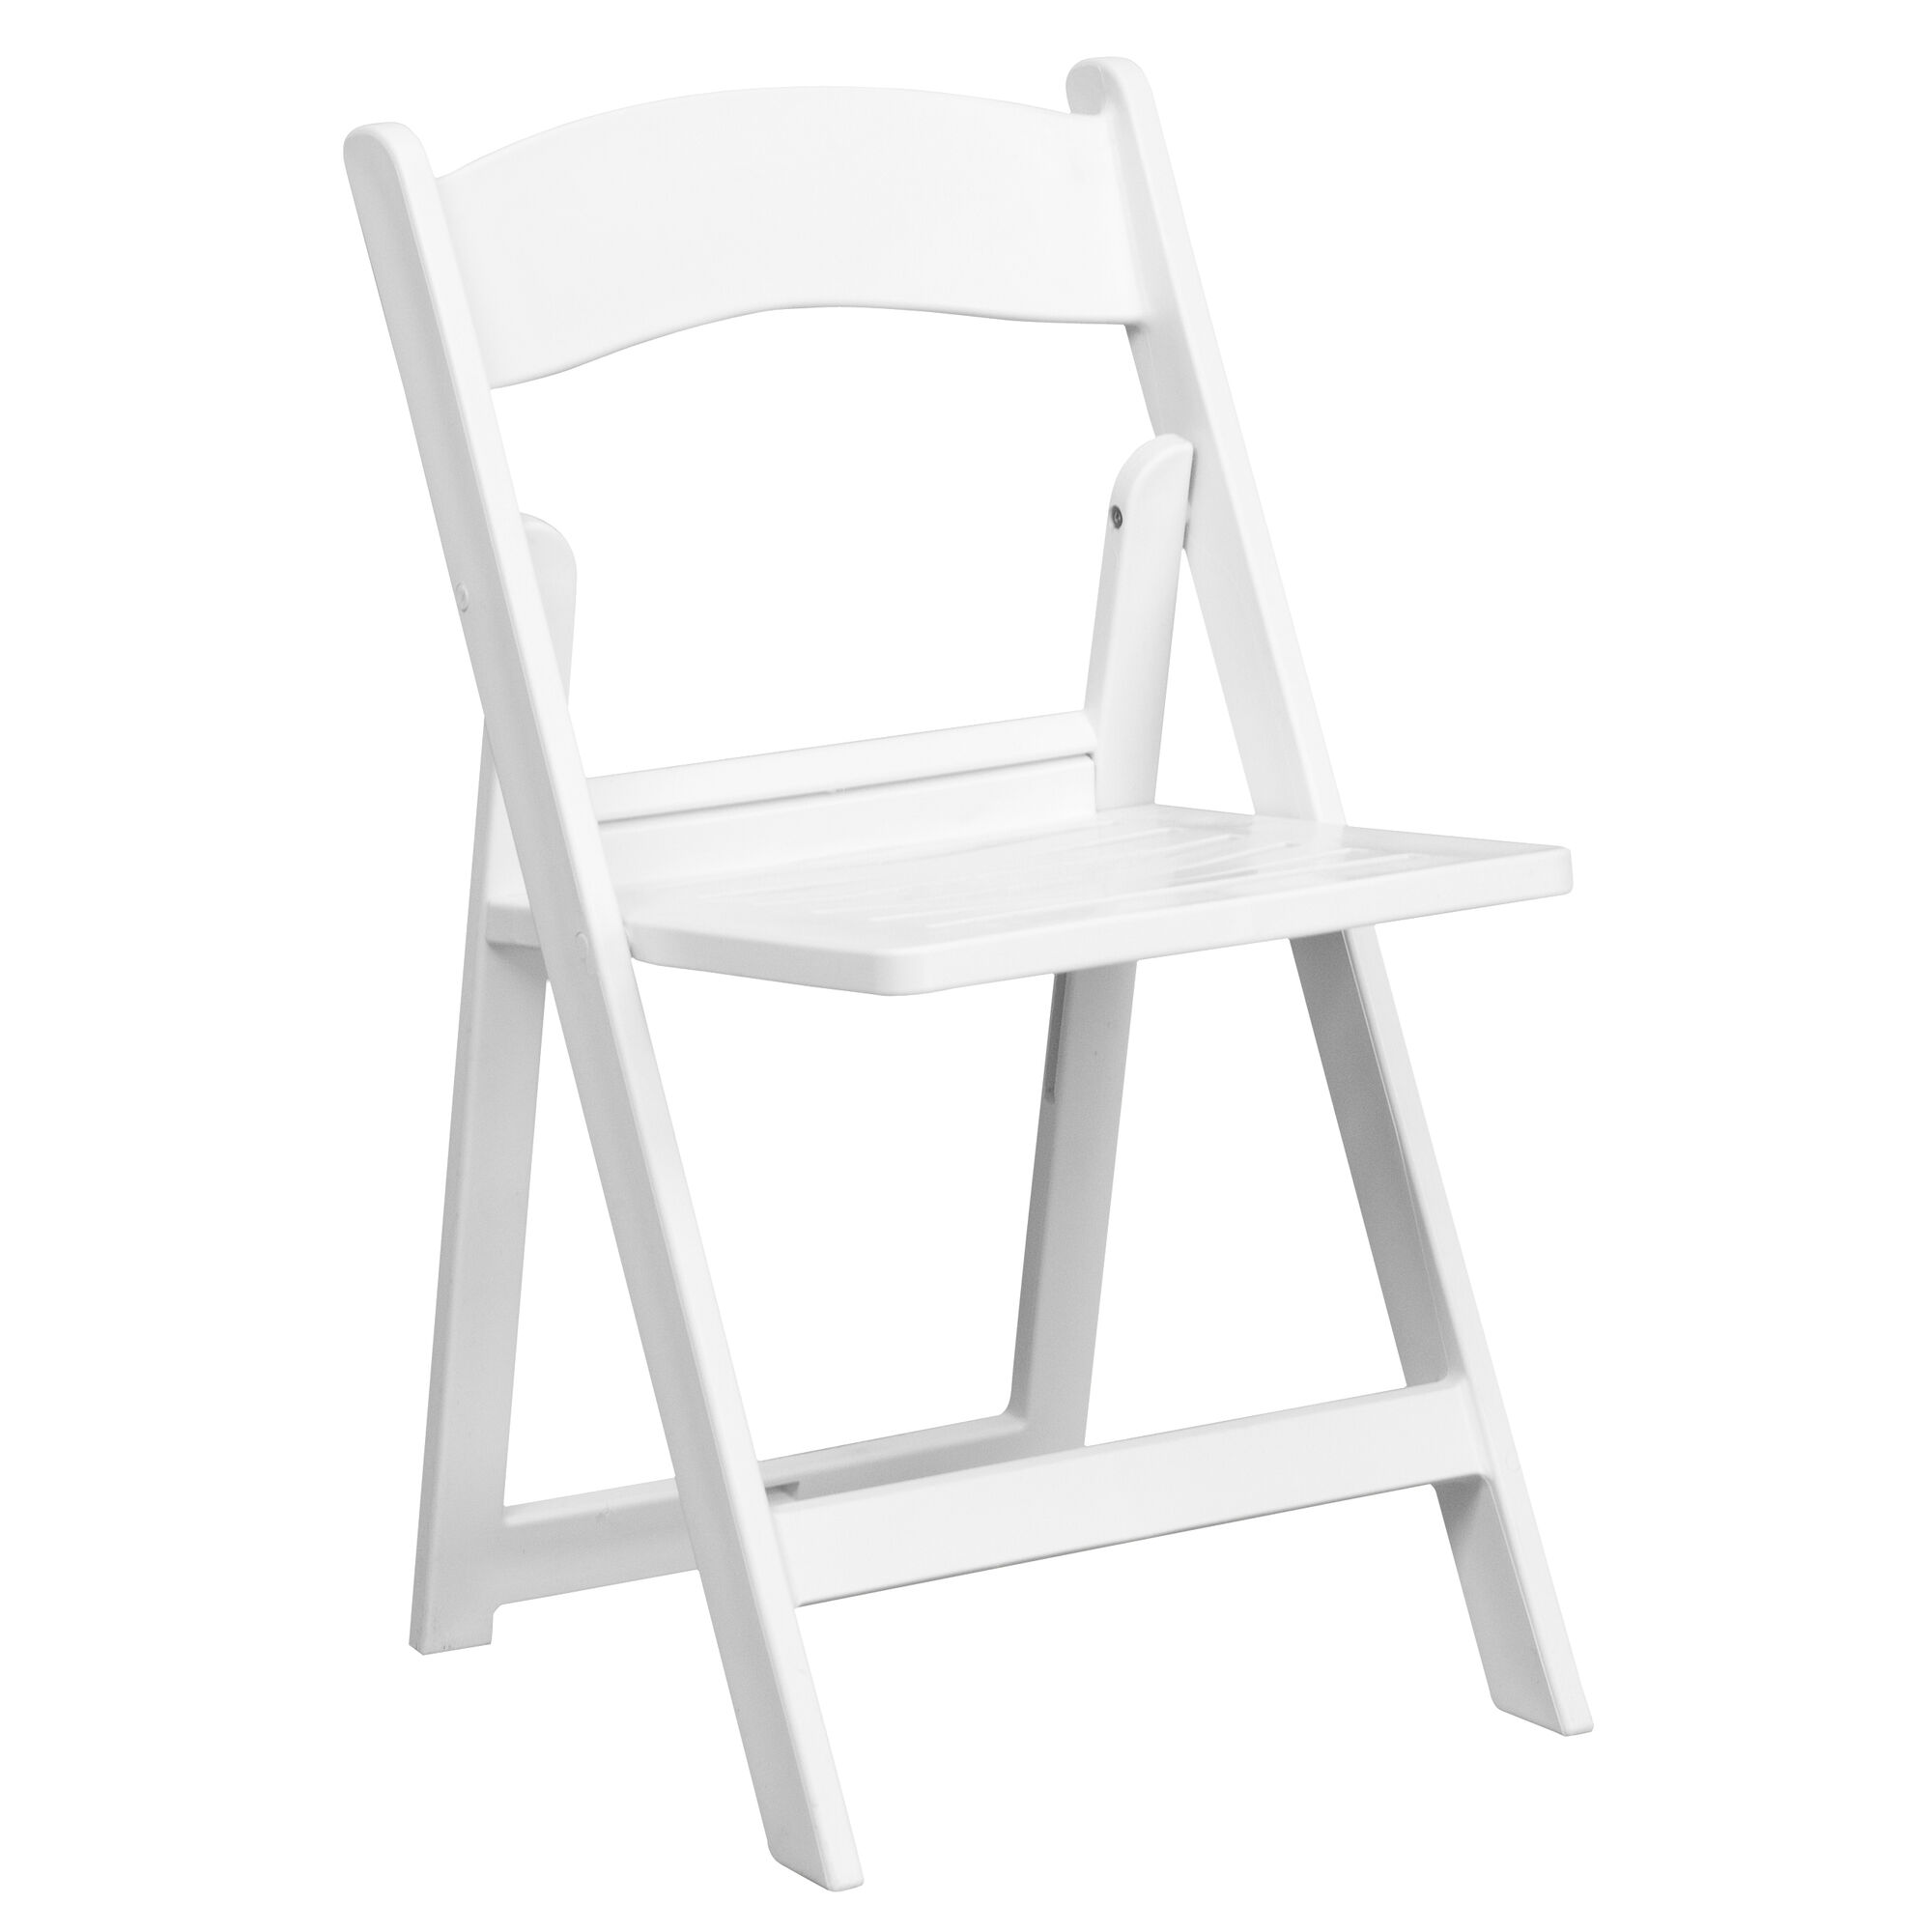 FoldingChairs4Less Resin Folding Chairs